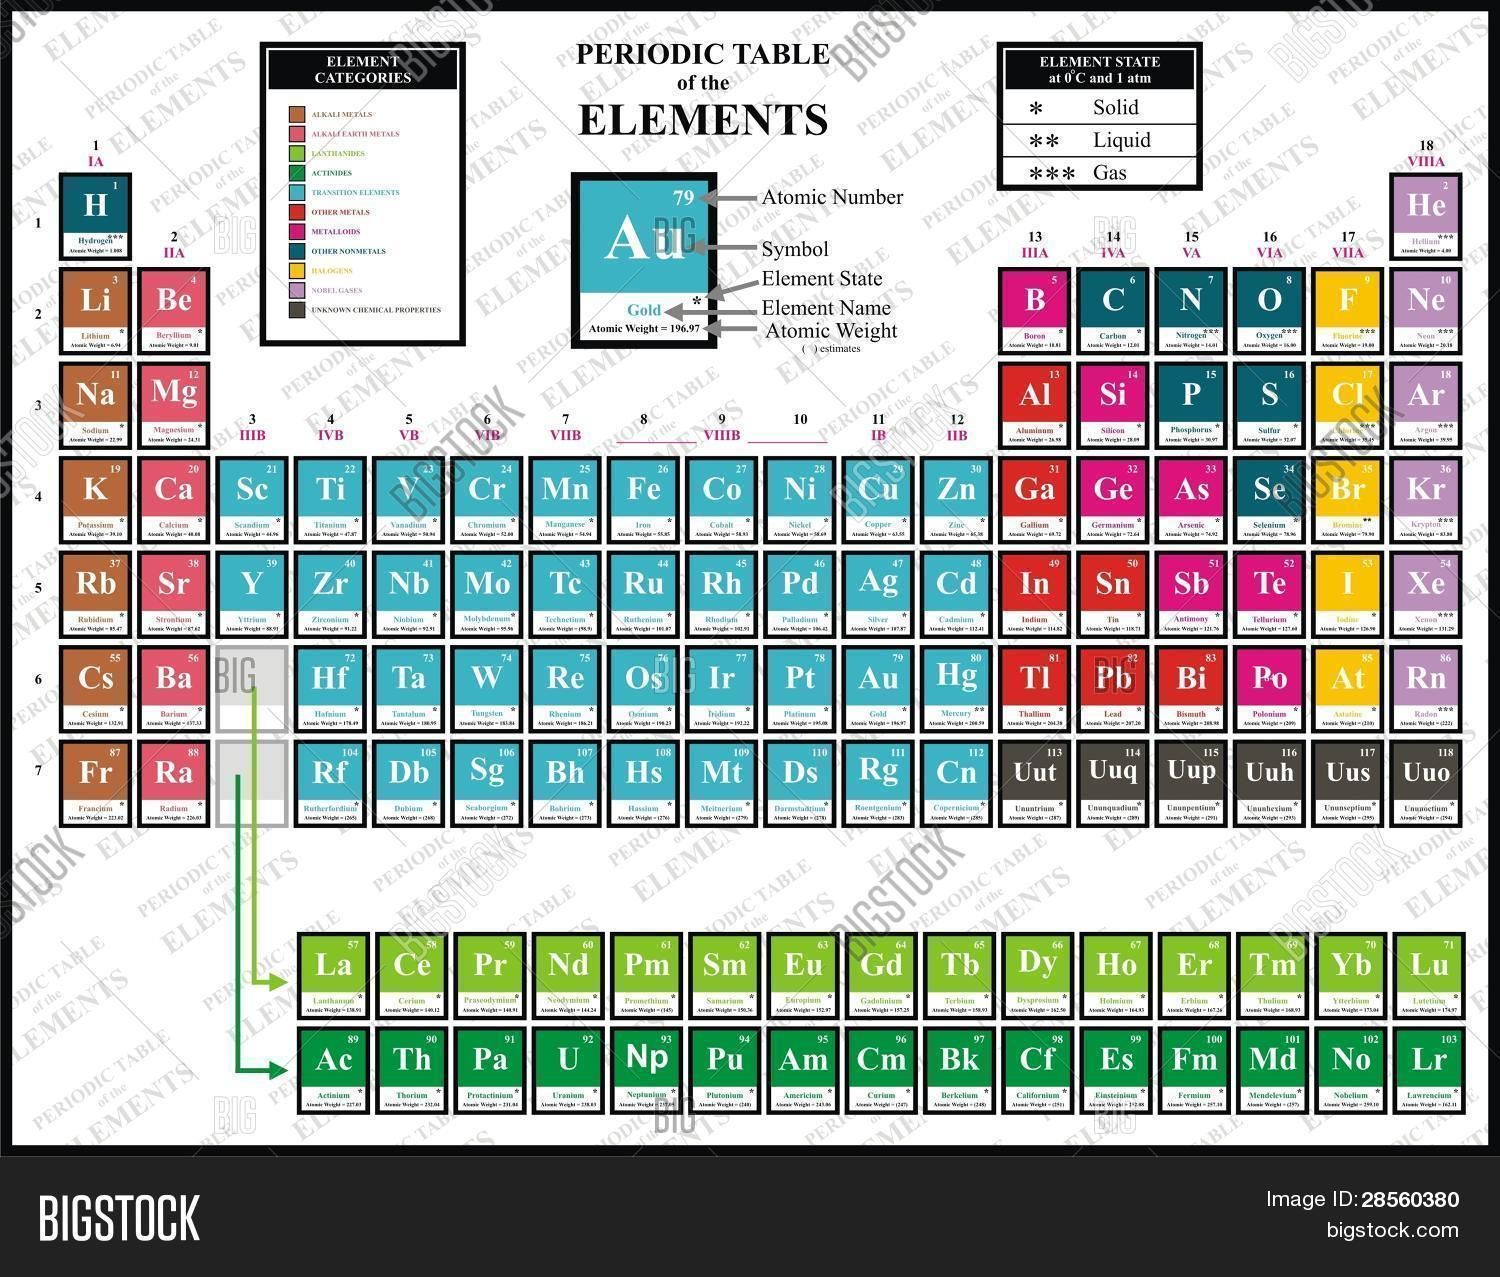 Colorful periodic image photo free trial bigstock colorful periodic table of the chemical elements including element name atomic number atomic urtaz Choice Image